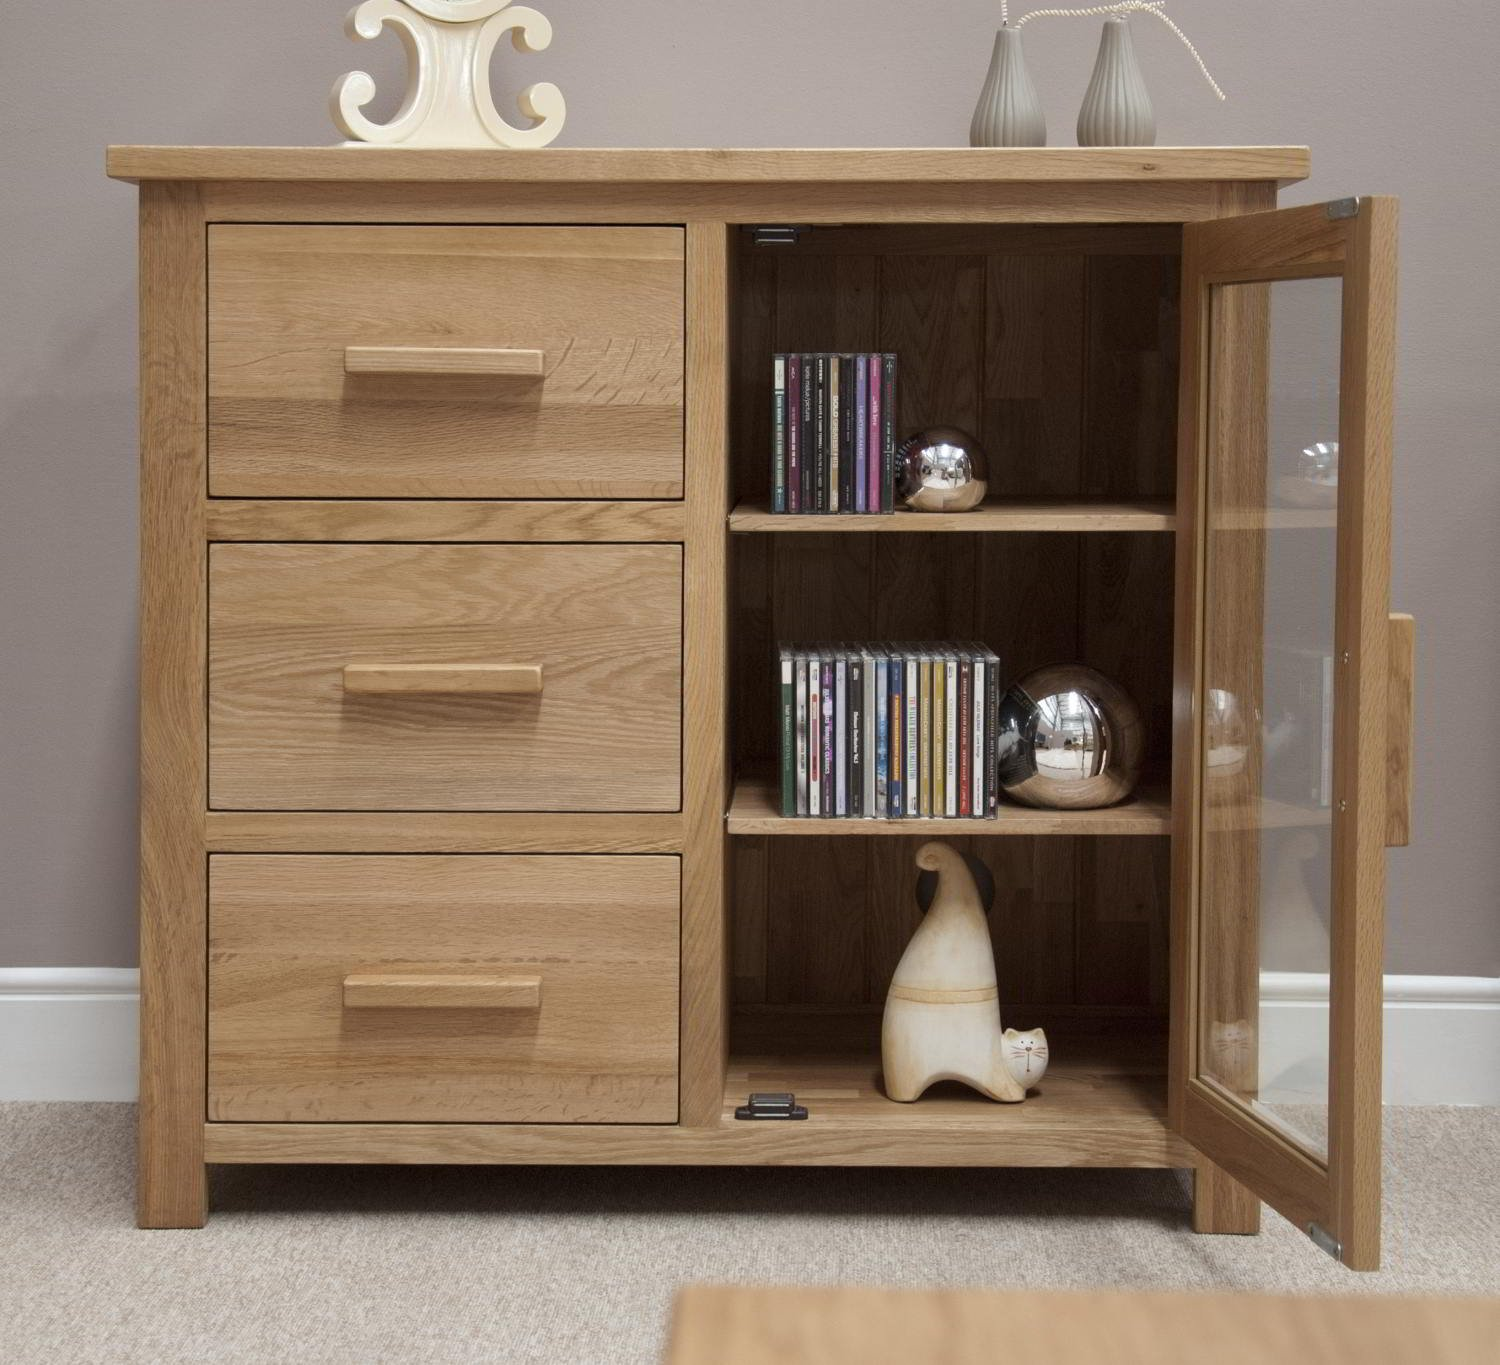 Eton Solid Oak Furniture Small Glazed Sideboard Hi Fi Cabinet Chest:  Amazon.co.uk: Kitchen U0026 Home Part 55